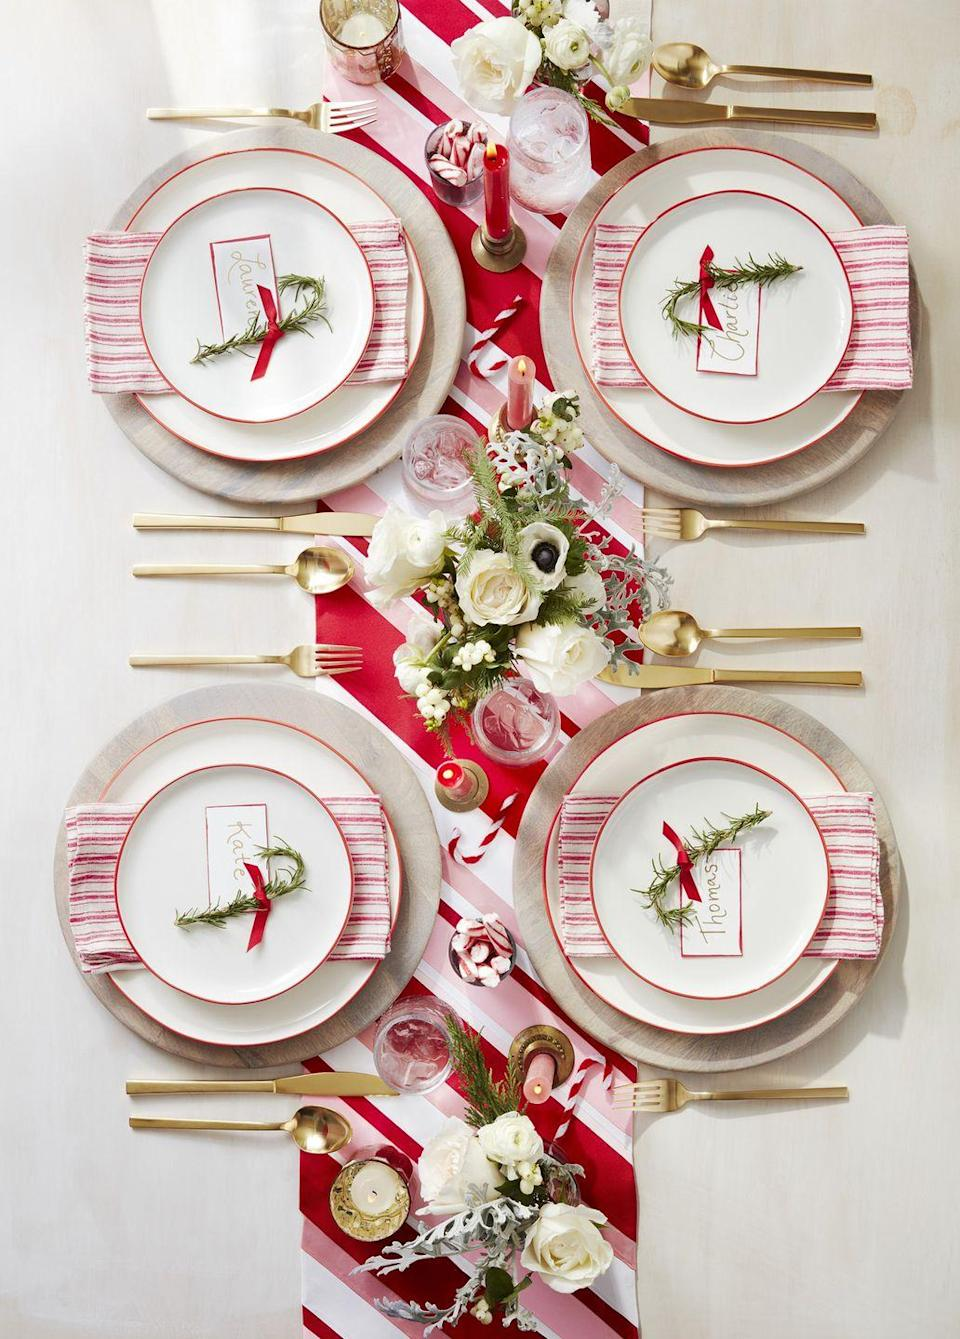 "<p>A candy cane-inspired display makes for the sweetest setup. To make the place cards, bend 7-inch-long pieces of <a href=""https://www.amazon.com/BENECREAT-18-Gauge-Tarnish-Resistant-33-Feet/dp/B077ZPRP1Q?tag=syn-yahoo-20&ascsubtag=%5Bartid%7C10050.g.644%5Bsrc%7Cyahoo-us"" rel=""nofollow noopener"" target=""_blank"" data-ylk=""slk:18-gauge gold wire"" class=""link rapid-noclick-resp"">18-gauge gold wire</a> into a candy cane shape. Attach lengths of rosemary with <a href=""https://www.amazon.com/FISHINGSIR-Monofilament-Fishing-Test-Premium/dp/B07FVQ5S7M?tag=syn-yahoo-20&ascsubtag=%5Bartid%7C10050.g.644%5Bsrc%7Cyahoo-us"" rel=""nofollow noopener"" target=""_blank"" data-ylk=""slk:fishing wire"" class=""link rapid-noclick-resp"">fishing wire</a>. Cut card stock to size and use a <a href=""https://www.amazon.com/Pentel-Touch-Brush-Stroke-SES15C-B/dp/B0081FYWXW?tag=syn-yahoo-20&ascsubtag=%5Bartid%7C10050.g.644%5Bsrc%7Cyahoo-us"" rel=""nofollow noopener"" target=""_blank"" data-ylk=""slk:red brush-tip pen"" class=""link rapid-noclick-resp"">red brush-tip pen</a> to stain edges, then write names with a <a href=""https://www.amazon.com/Pentel-Sunburst-Metallic-Permanent-K908BP2X/dp/B003XQFW9C?tag=syn-yahoo-20&ascsubtag=%5Bartid%7C10050.g.644%5Bsrc%7Cyahoo-us"" rel=""nofollow noopener"" target=""_blank"" data-ylk=""slk:gold pen"" class=""link rapid-noclick-resp"">gold pen</a>. Punch a hole in one corner, thread <a href=""https://www.amazon.com/Topenca-Supplies-Inches-Double-Ribbon/dp/B01ENR4L4Q?tag=syn-yahoo-20&ascsubtag=%5Bartid%7C10050.g.644%5Bsrc%7Cyahoo-us"" rel=""nofollow noopener"" target=""_blank"" data-ylk=""slk:thin red ribbon"" class=""link rapid-noclick-resp"">thin red ribbon</a> through hole, and tie around ""candy cane."" To make the ribbon runner, secure differing widths of <a href=""https://www.amazon.com/Creative-Ideas-Grosgrain-Ribbon-50-Yard/dp/B005G01IOG?tag=syn-yahoo-20&ascsubtag=%5Bartid%7C10050.g.644%5Bsrc%7Cyahoo-us"" rel=""nofollow noopener"" target=""_blank"" data-ylk=""slk:red"" class=""link rapid-noclick-resp"">red</a>, <a href=""https://www.amazon.com/Creative-Ideas-Grosgrain-Ribbon-50-Yard/dp/B005E2X2OA?tag=syn-yahoo-20&ascsubtag=%5Bartid%7C10050.g.644%5Bsrc%7Cyahoo-us"" rel=""nofollow noopener"" target=""_blank"" data-ylk=""slk:white"" class=""link rapid-noclick-resp"">white</a>, and <a href=""https://www.amazon.com/Ribest-Grosgrain-Accessories-Scrapbooking-Decoration/dp/B078YL12TZ?tag=syn-yahoo-20&ascsubtag=%5Bartid%7C10050.g.644%5Bsrc%7Cyahoo-us"" rel=""nofollow noopener"" target=""_blank"" data-ylk=""slk:pink grosgrain ribbon"" class=""link rapid-noclick-resp"">pink grosgrain ribbon</a> on the diagonal to a burlap runner with strips of <a href=""https://www.amazon.com/Mistyfuse-Misty-Yards-Fusible-Webbing/dp/B000PFPSJI?tag=syn-yahoo-20&ascsubtag=%5Bartid%7C10050.g.644%5Bsrc%7Cyahoo-us"" rel=""nofollow noopener"" target=""_blank"" data-ylk=""slk:thin fusible webbing"" class=""link rapid-noclick-resp"">thin fusible webbing</a>. </p><p><a class=""link rapid-noclick-resp"" href=""https://www.amazon.com/AmazonBasics-16-Piece-Stripe-Dinnerware-Service/dp/B00Q5X24XM?tag=syn-yahoo-20&ascsubtag=%5Bartid%7C10050.g.644%5Bsrc%7Cyahoo-us"" rel=""nofollow noopener"" target=""_blank"" data-ylk=""slk:SHOP CHRISTMAS DINNERWARE"">SHOP CHRISTMAS DINNERWARE</a></p>"